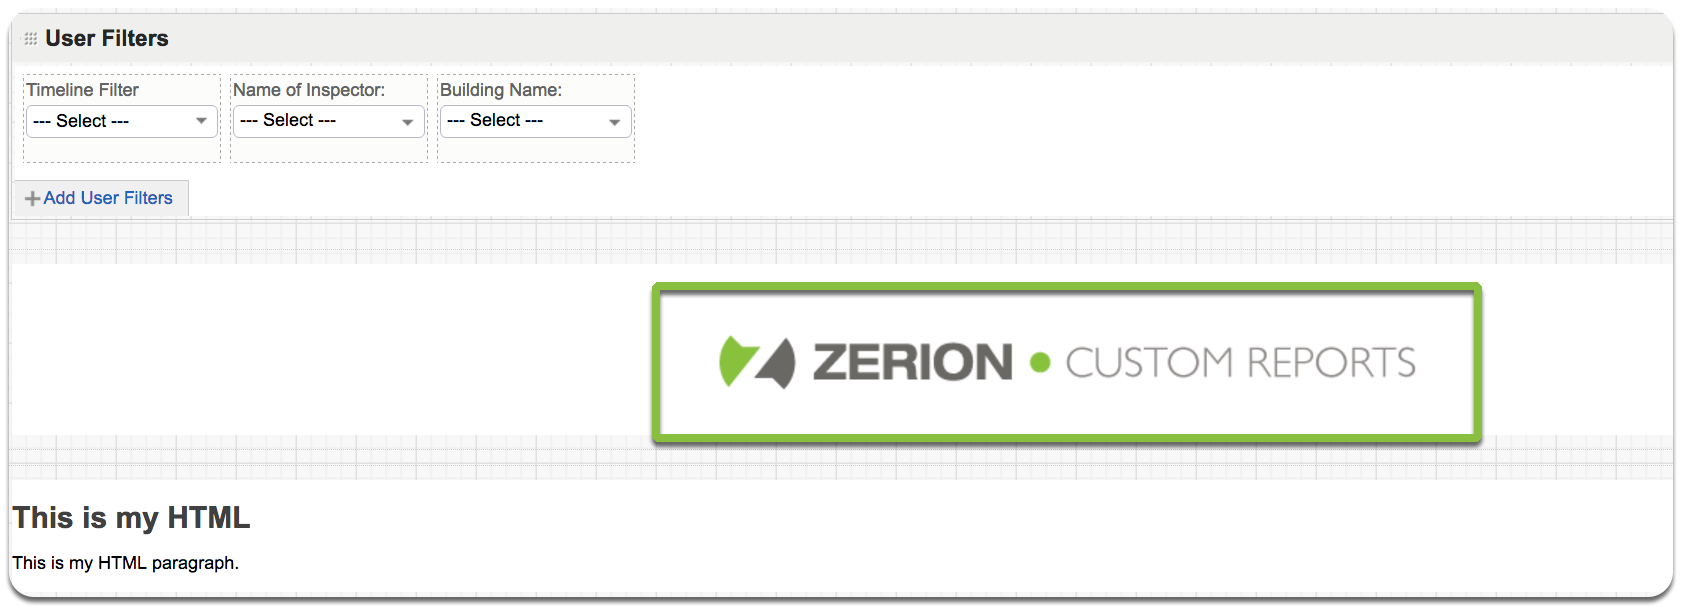 add images to zerion dashboard